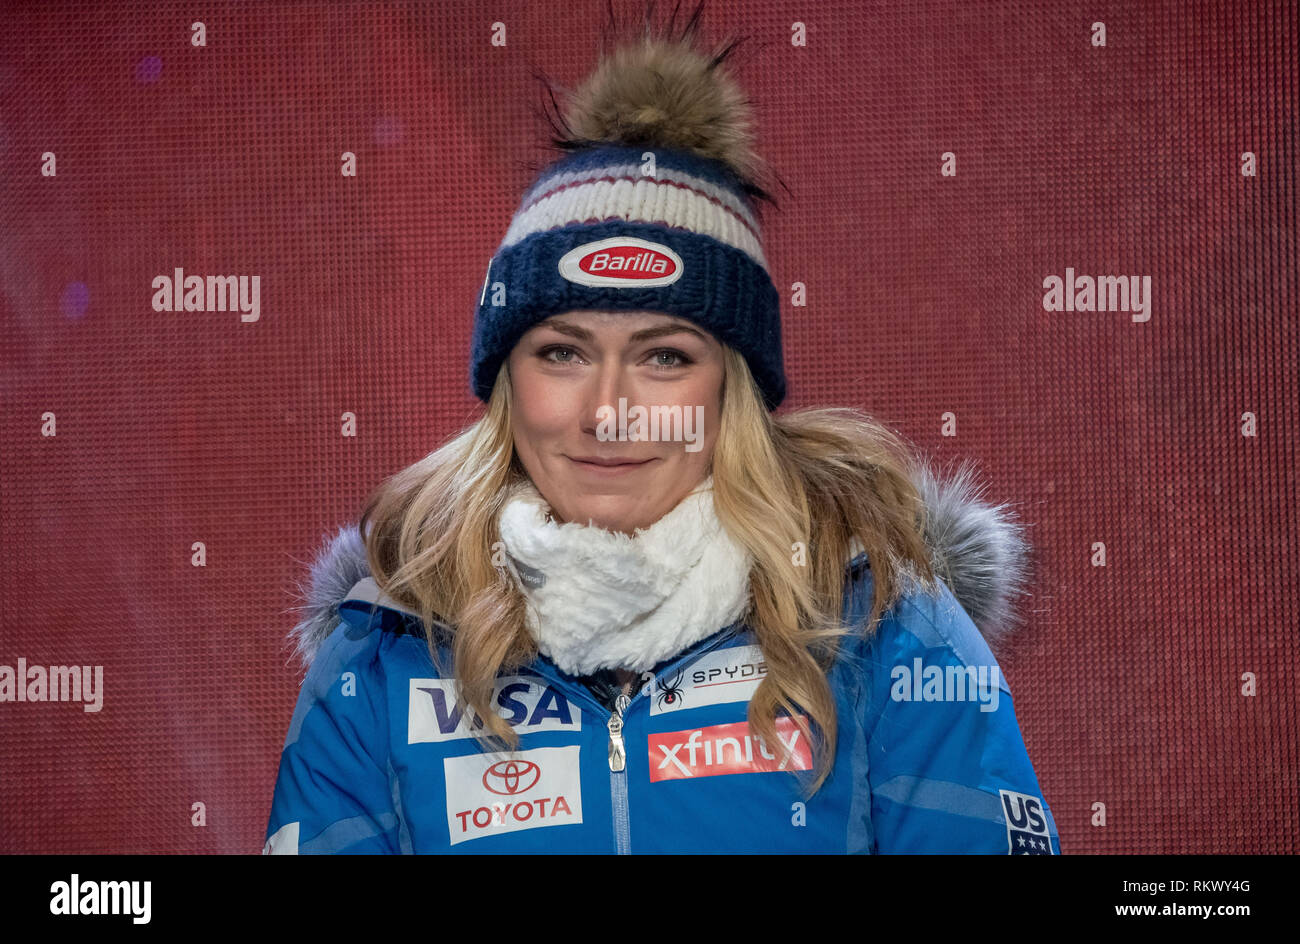 Are, Sweden. 05th Feb, 2019. Alpine Skiing :, Super G, Ladies: Winner Mikaela Shiffrin at the medal ceremony. Credit: Michael Kappeler/dpa/Alamy Live News - Stock Image